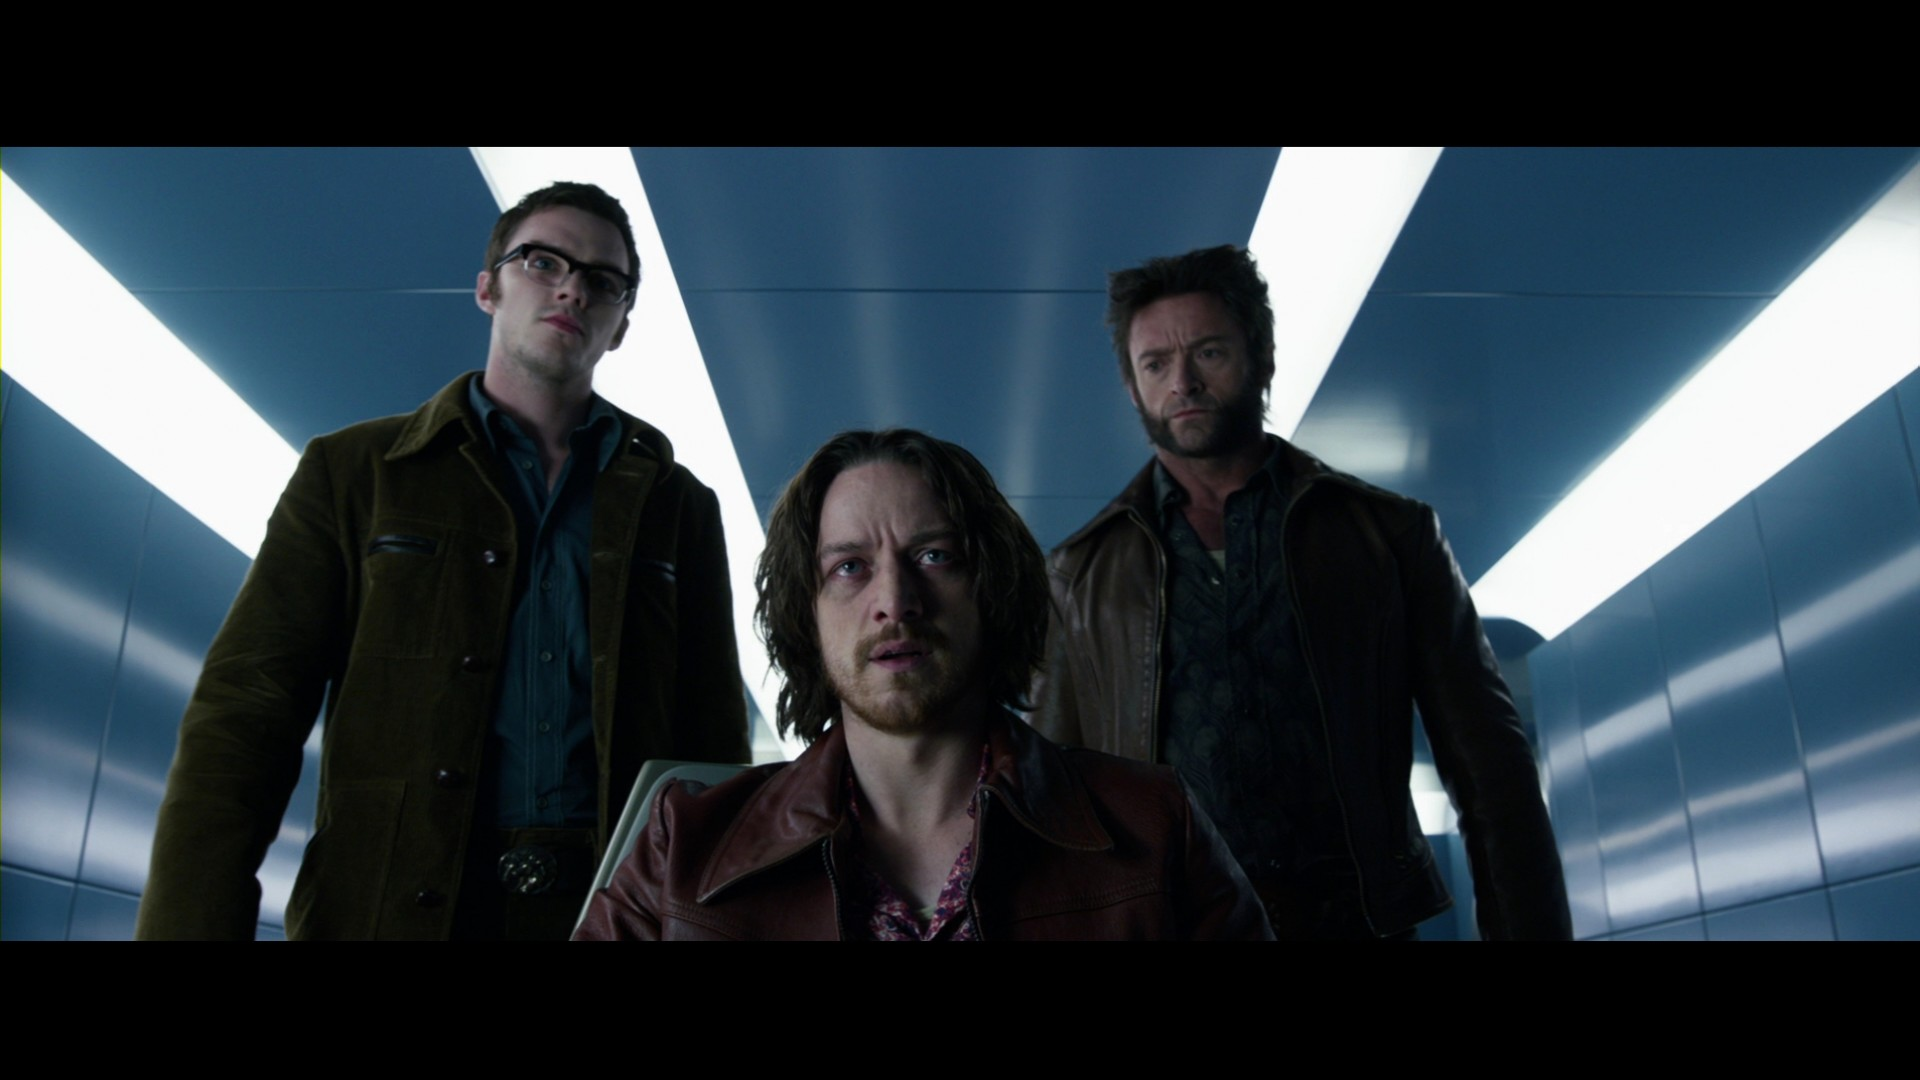 X-Men days of future past - Blu-ray